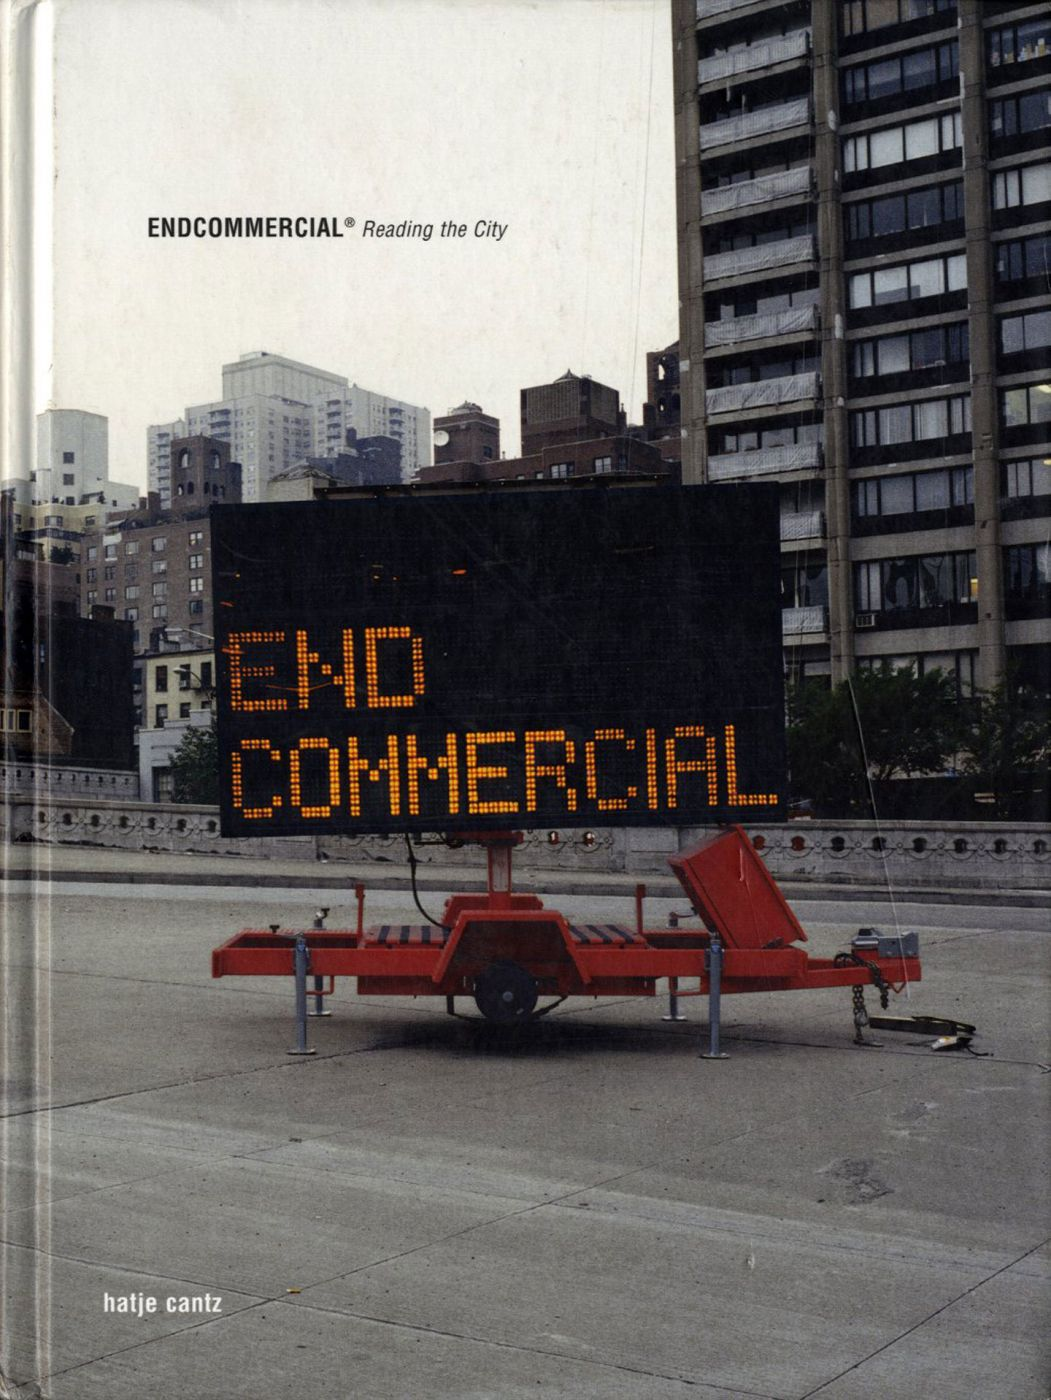 Endcommercial: Reading the City [SIGNED by BÖHM and PIZZARONI]